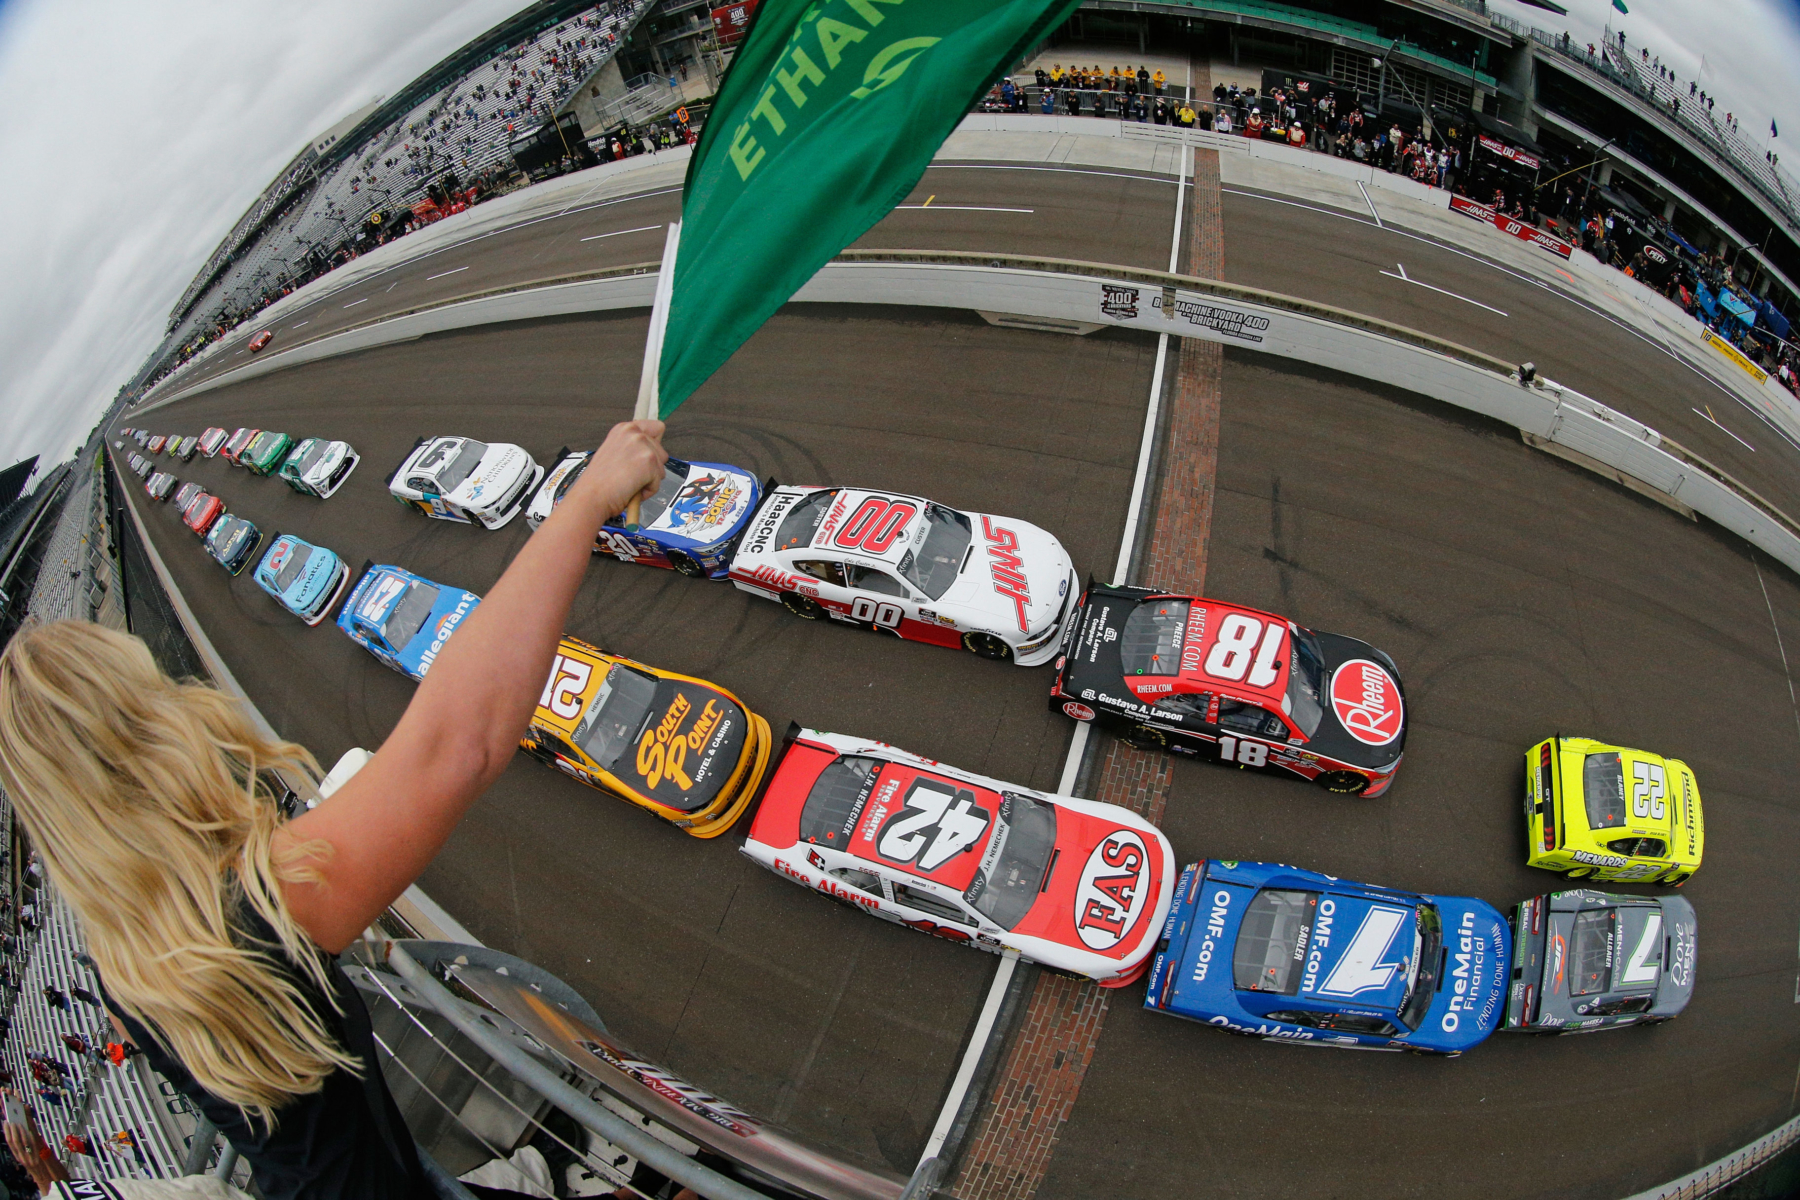 Green flag in the Indianapolis Xfinity Series race